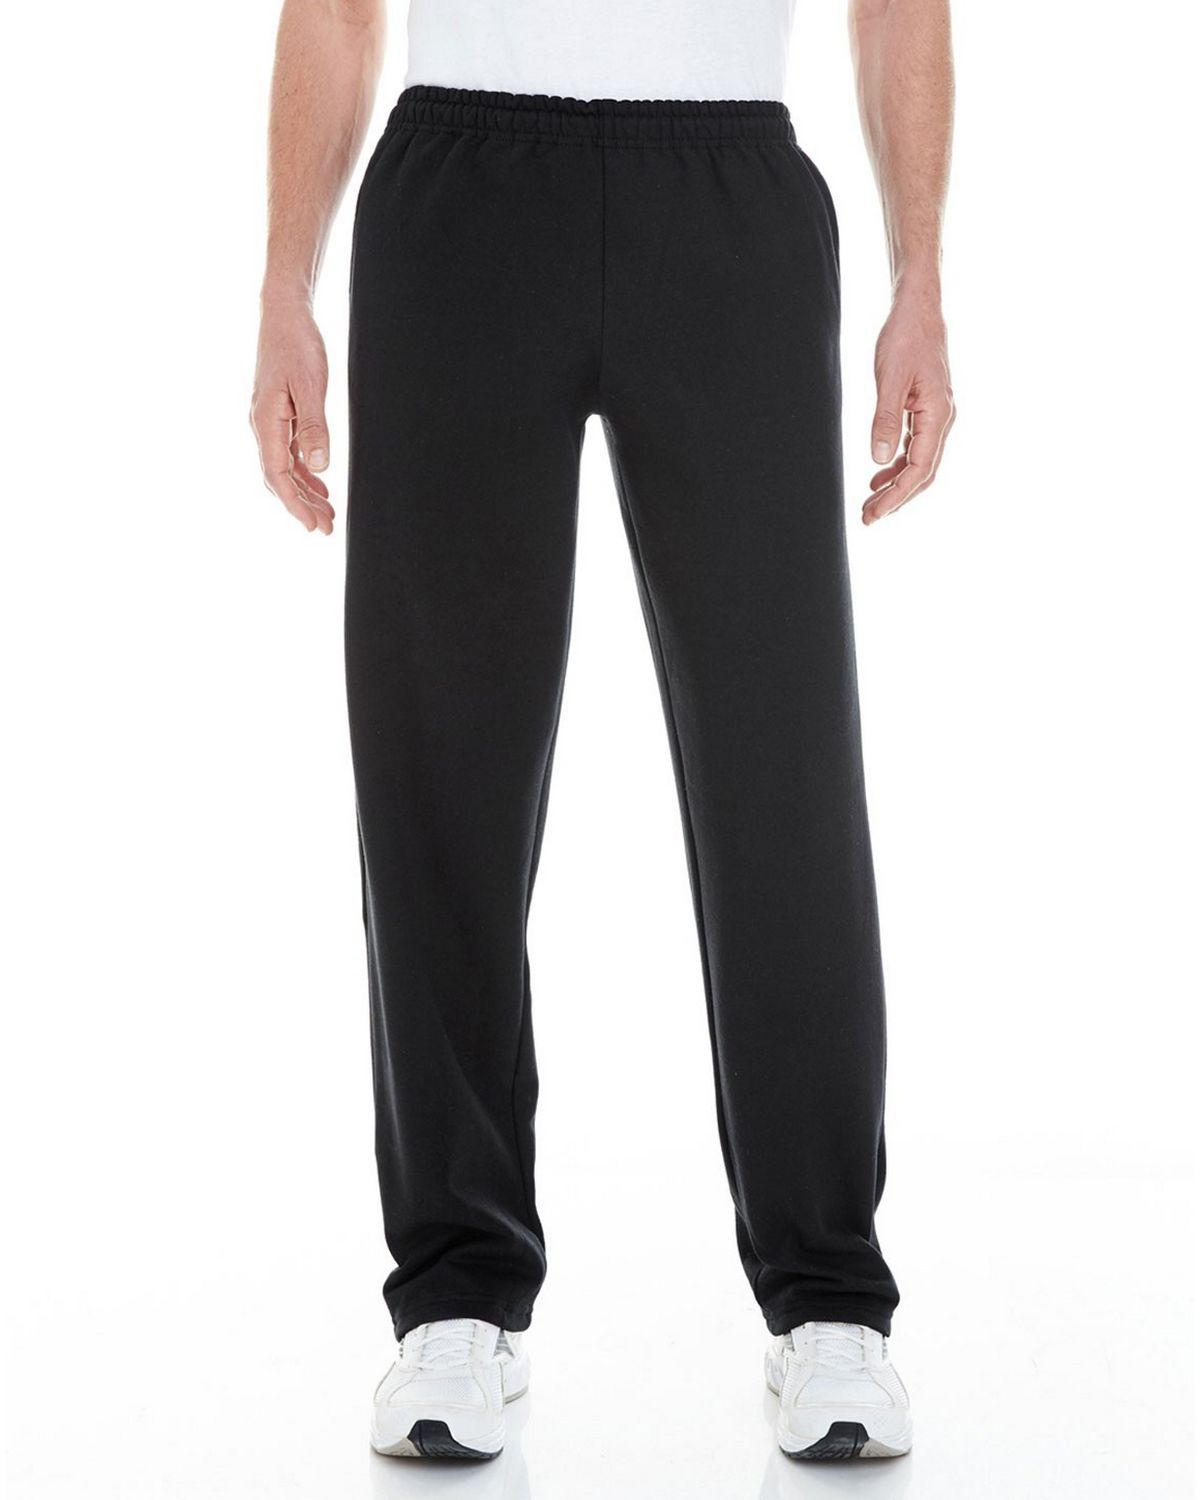 Gildan G18300 Heavy Blend Adult Sweatpants - Black - 5X G18300